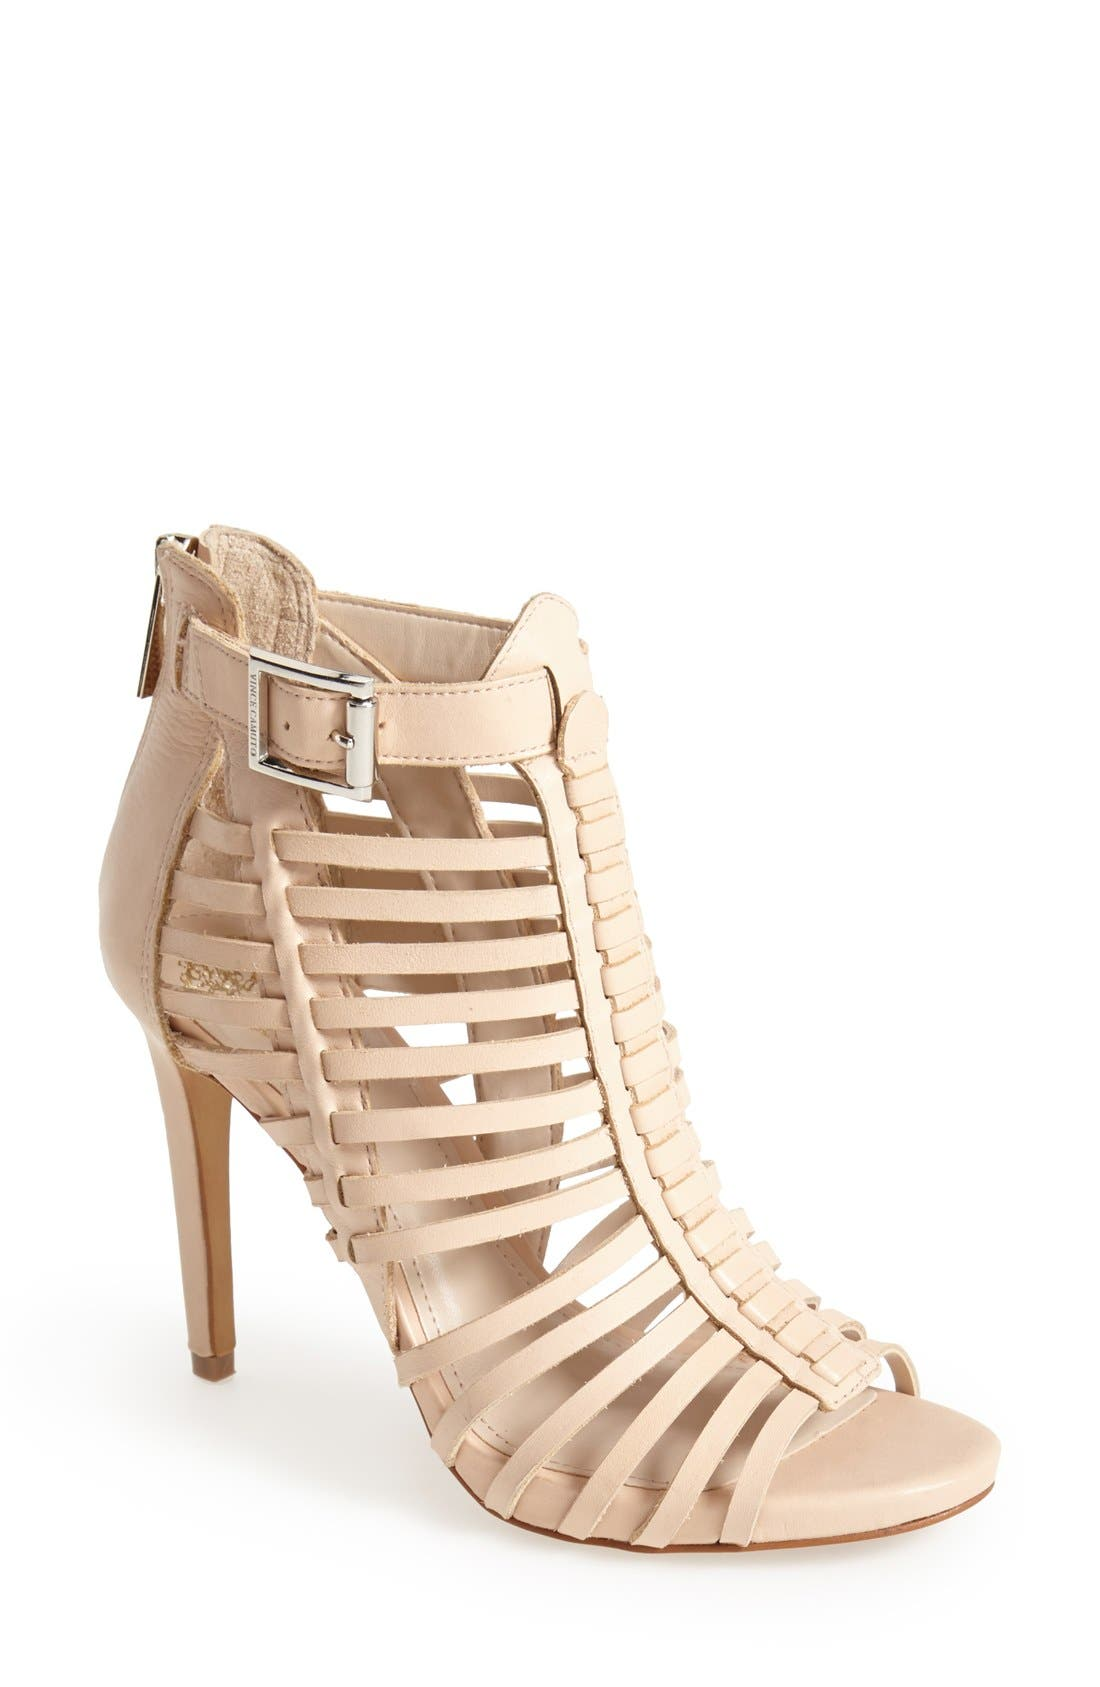 Main Image - Vince Camuto 'Remmie' Leather Cage Sandal (Women)